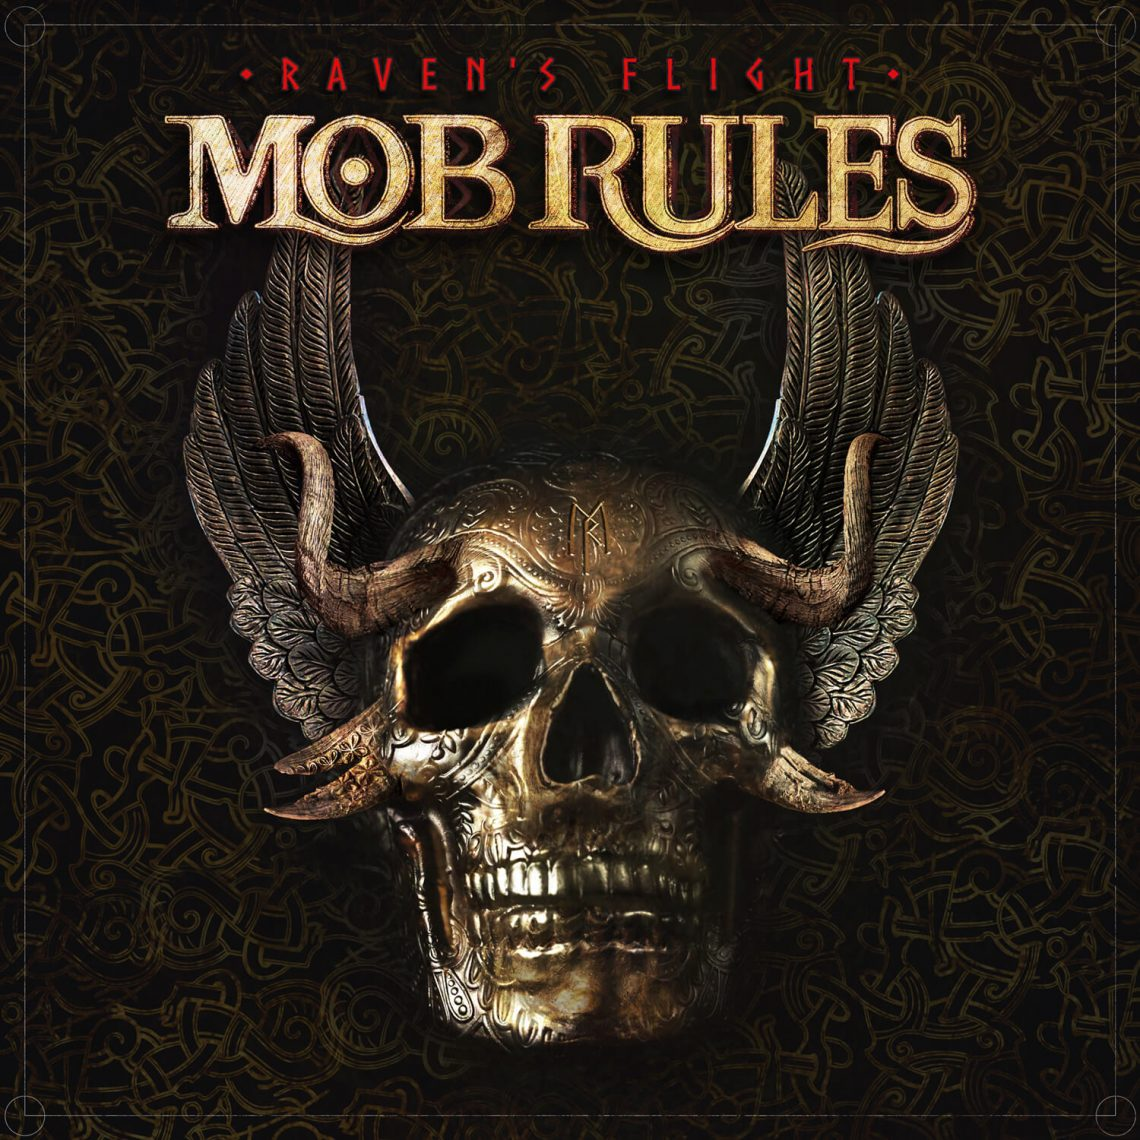 """Mob Rules cuts the waiting time until their next album with a cover of Amon Amarth's """"Raven's Flight""""."""